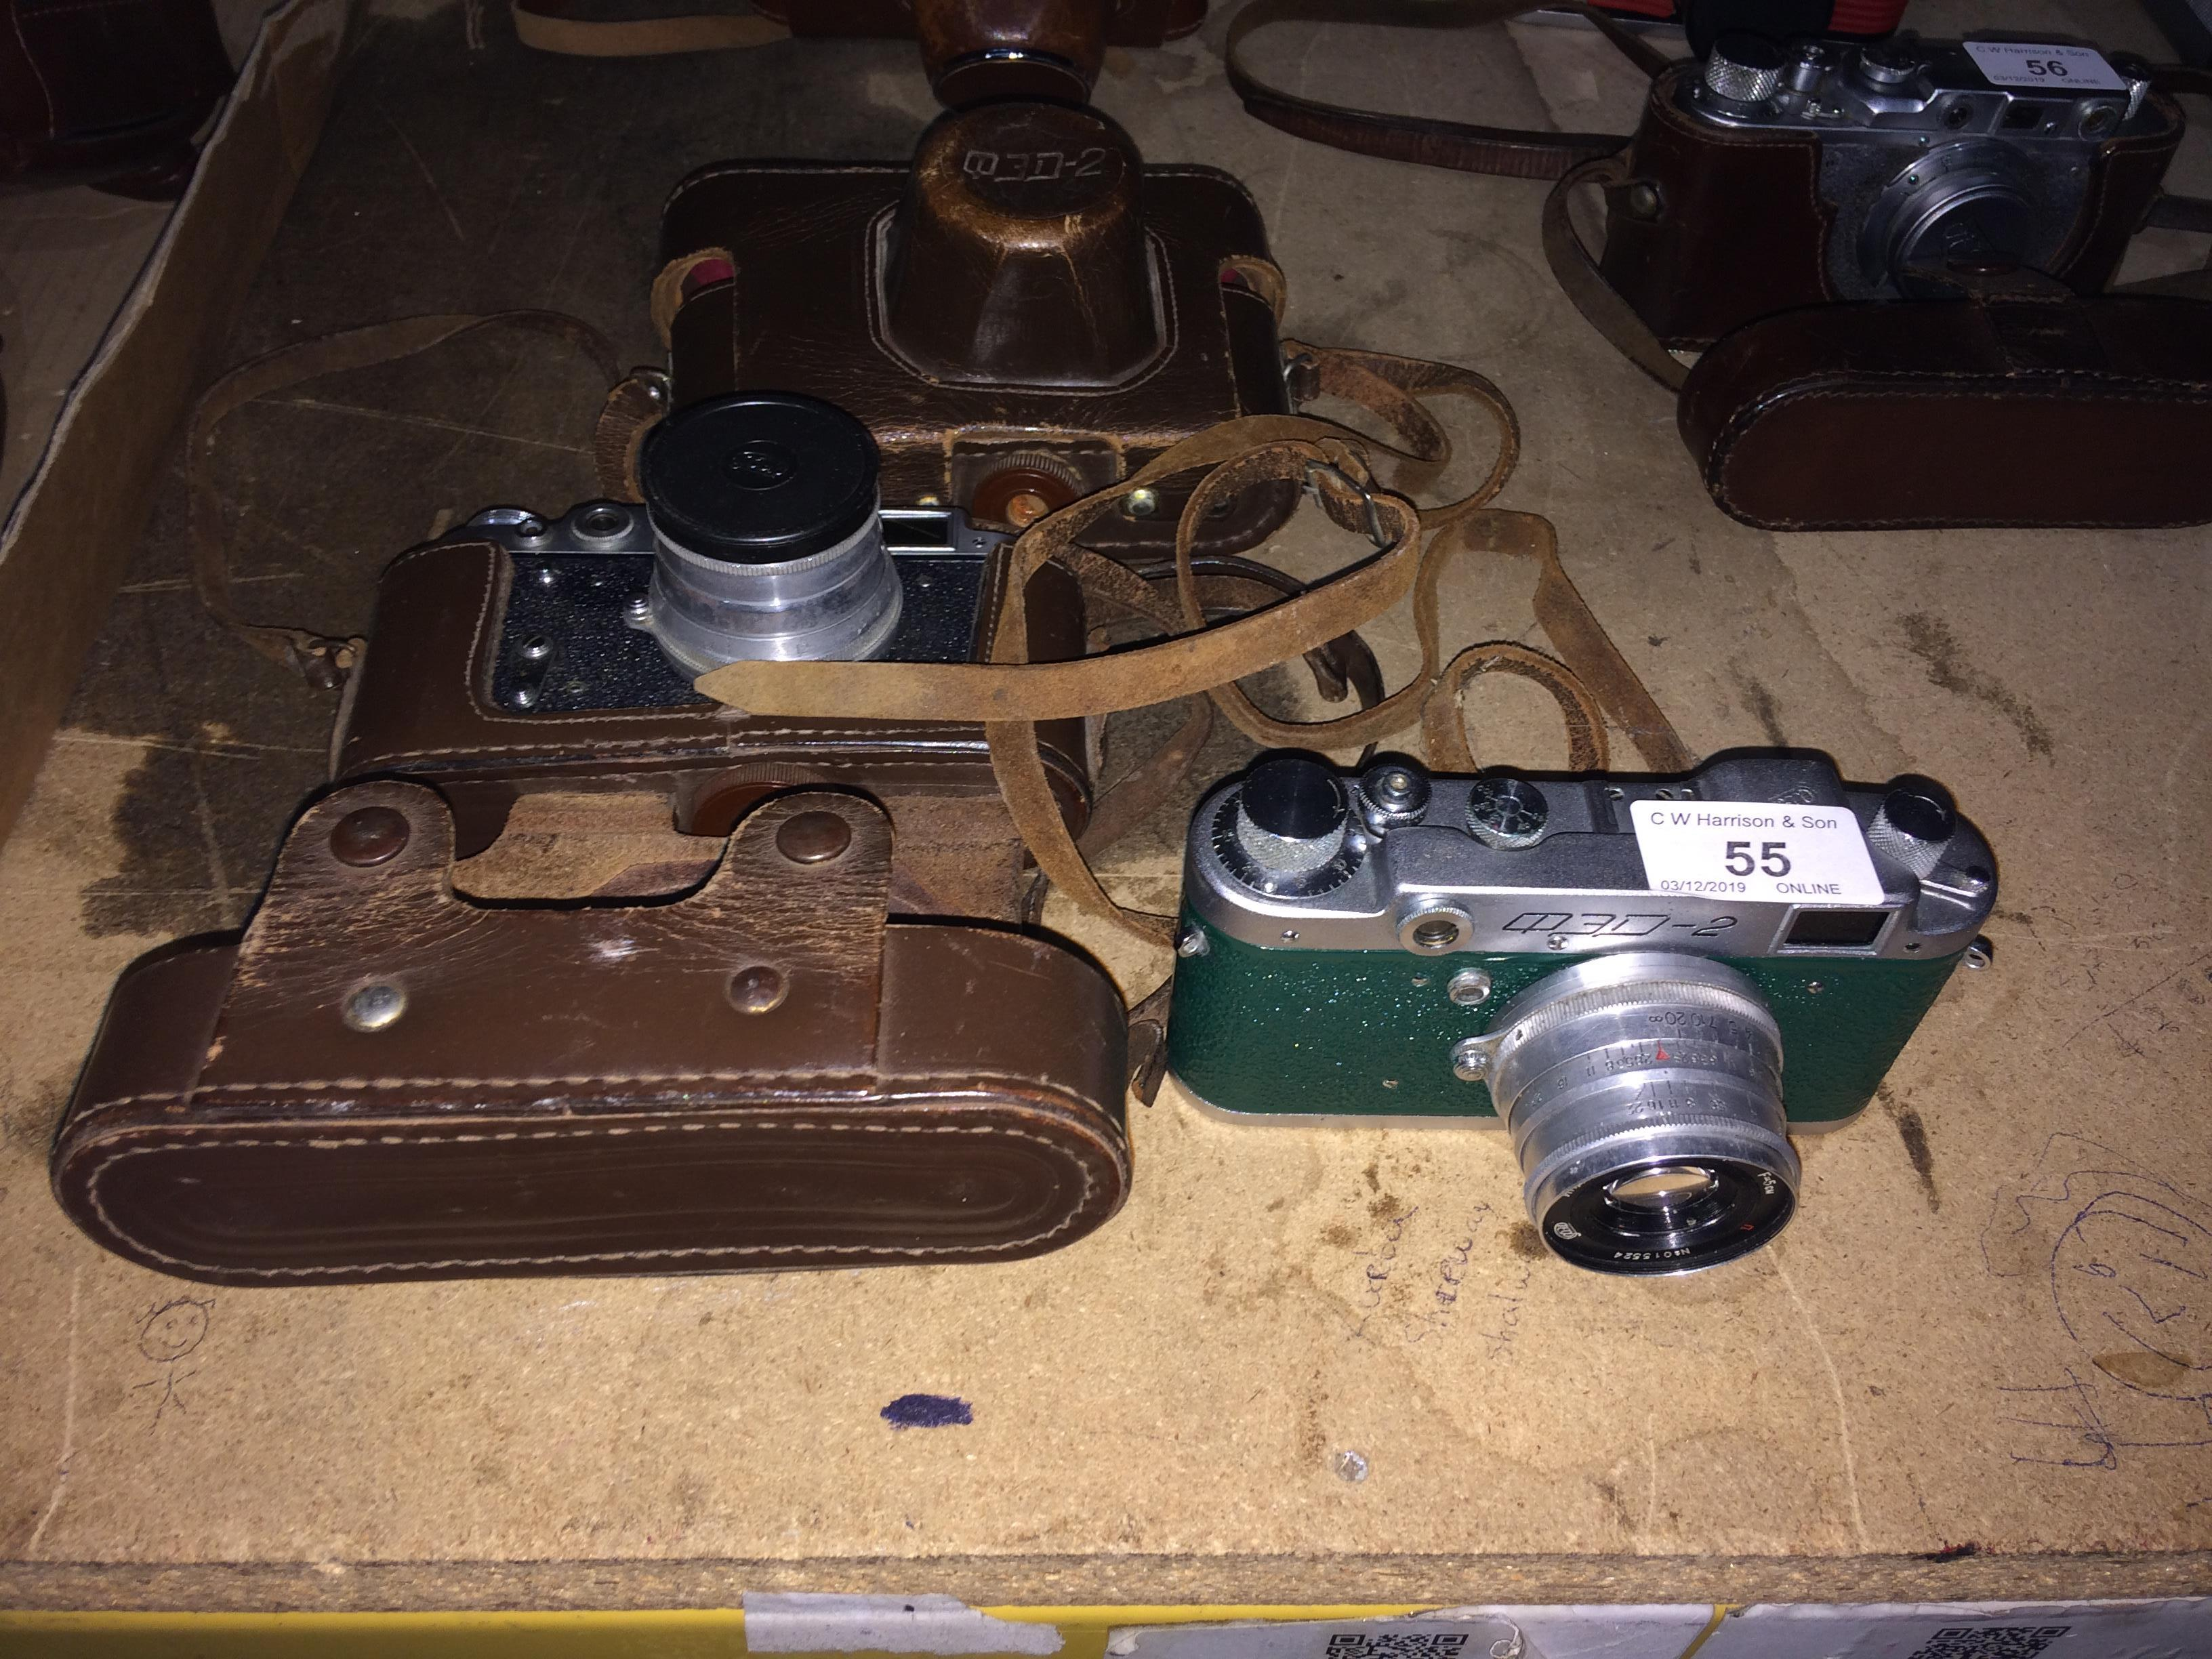 Lot 55 - 2 x FED QED2 cameras (2 x brown leather cases)